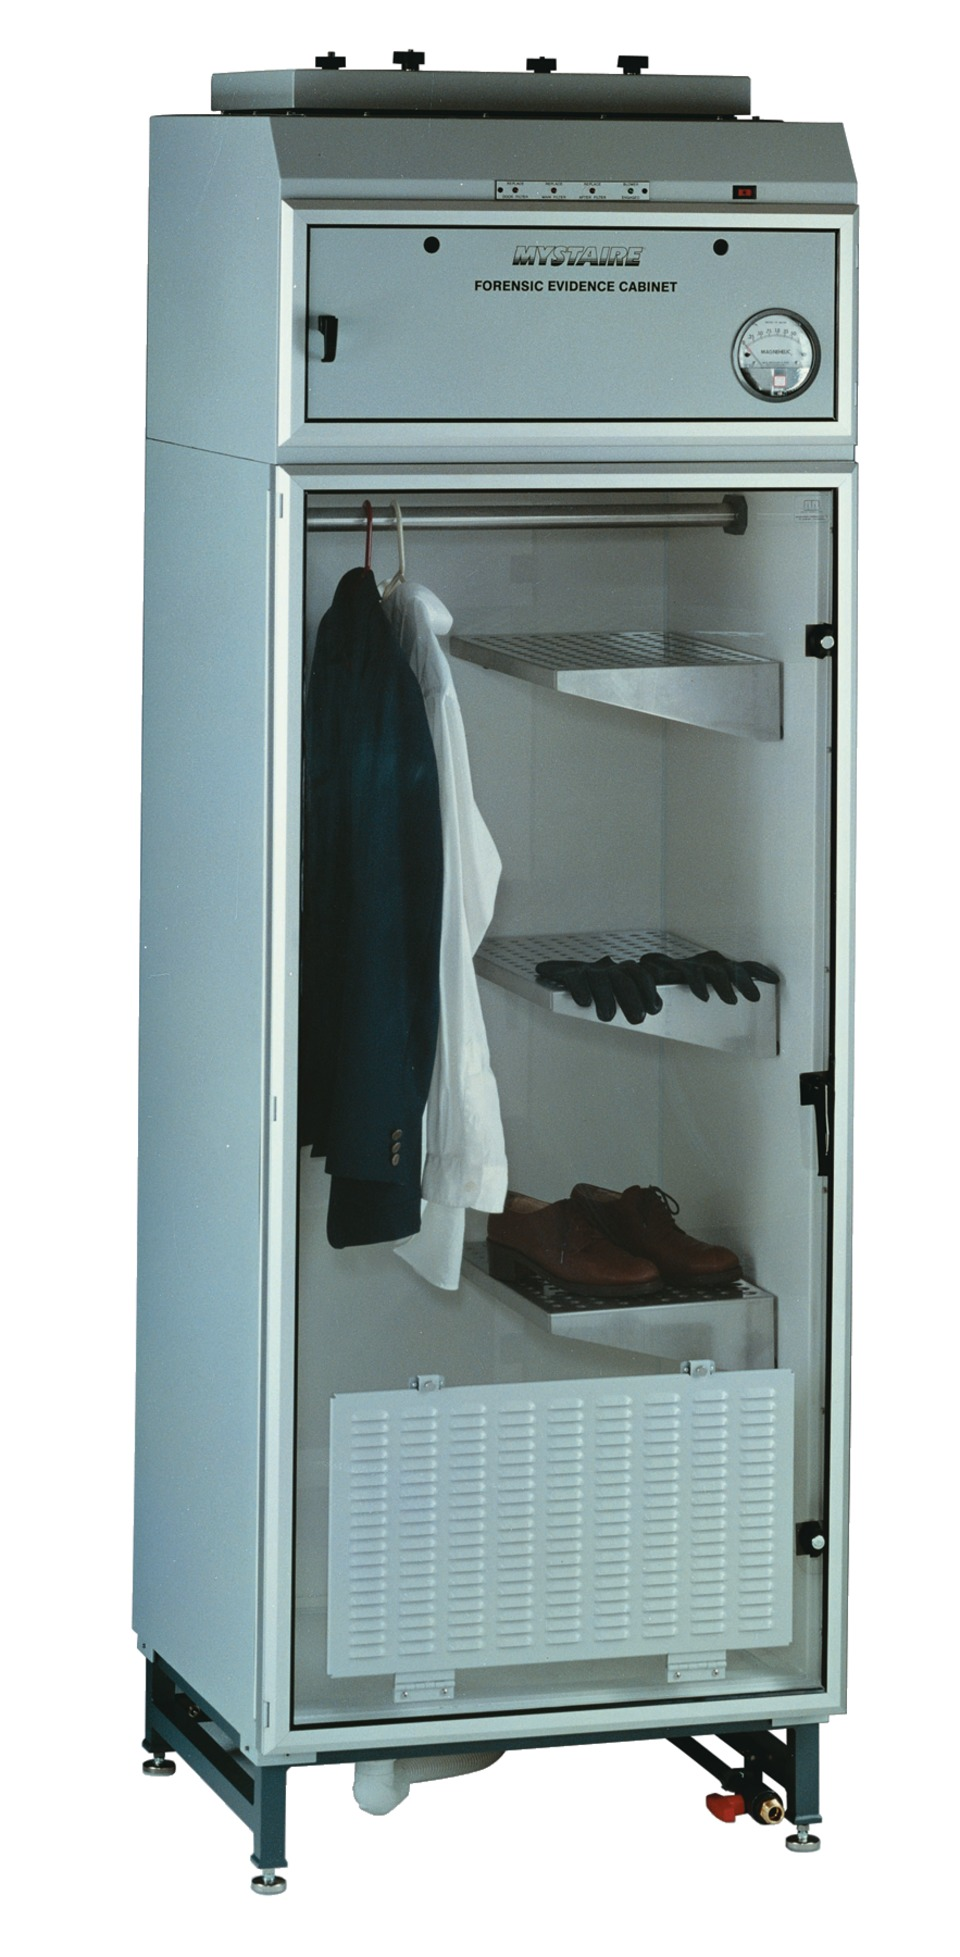 Mystaire Drying Cabinet In Evidence Storage Amp Equipment